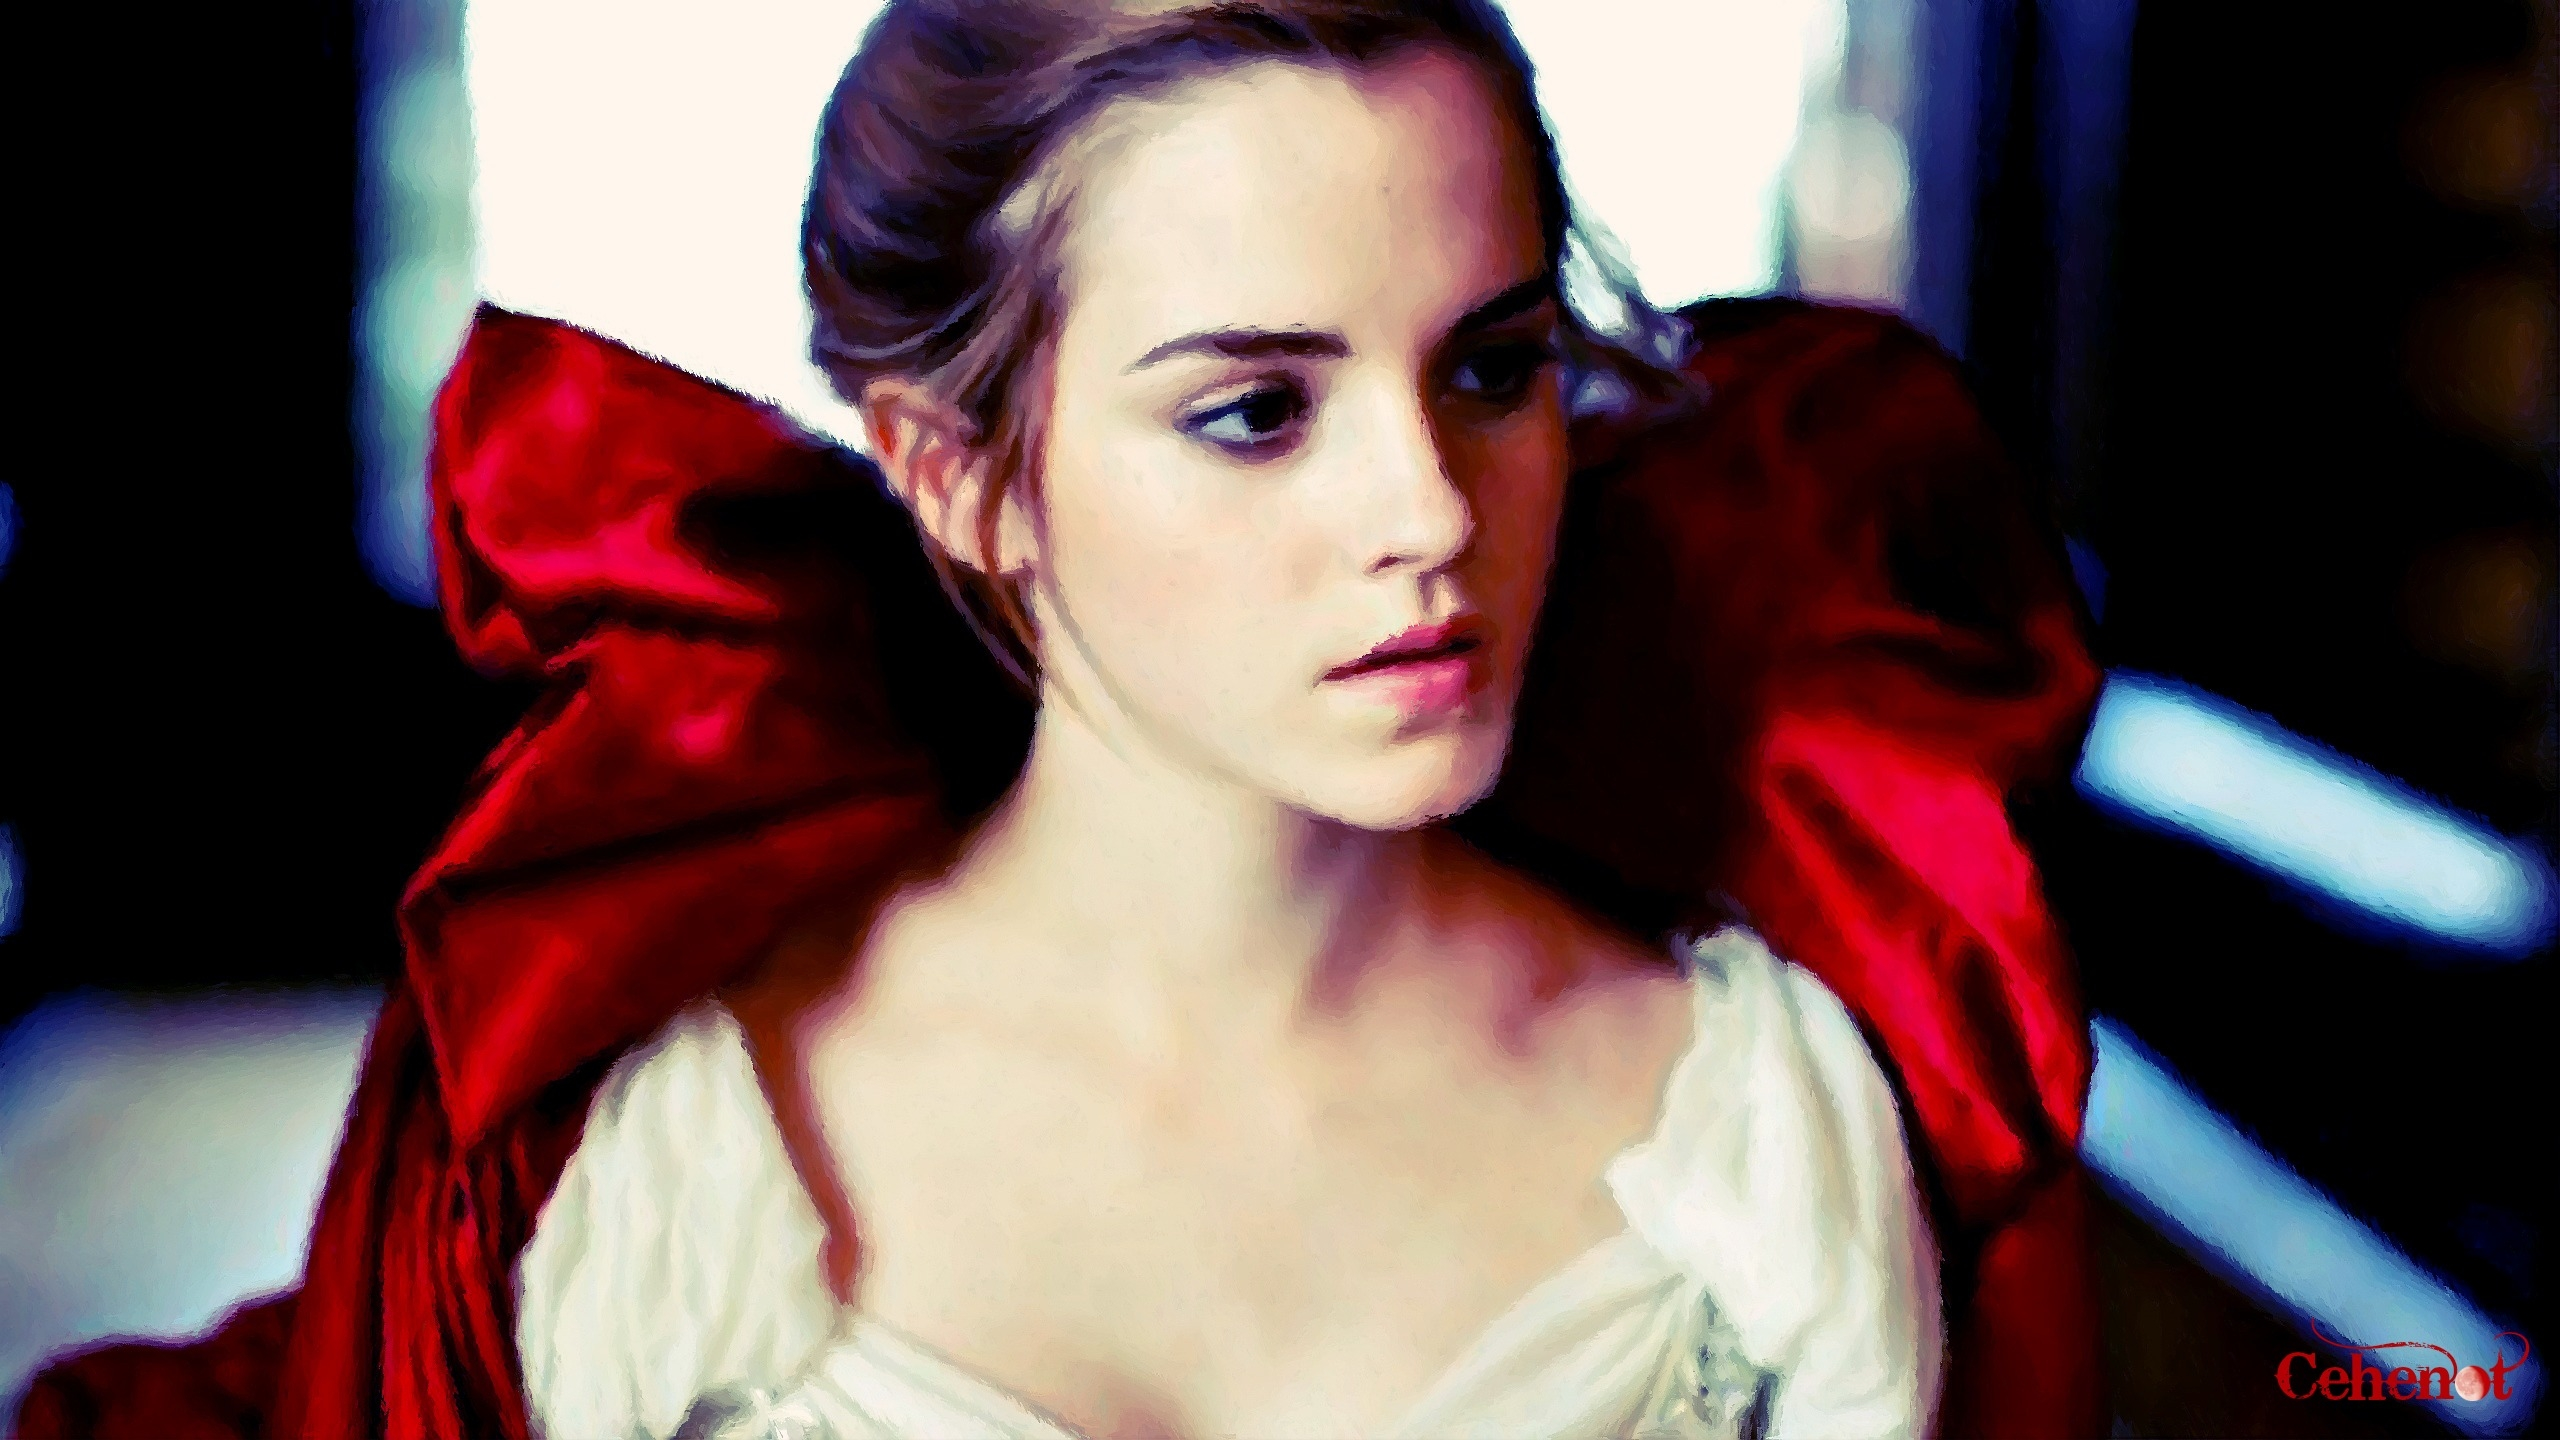 Emma Watson As Belle Beauty And The Beast Vs Beauty And